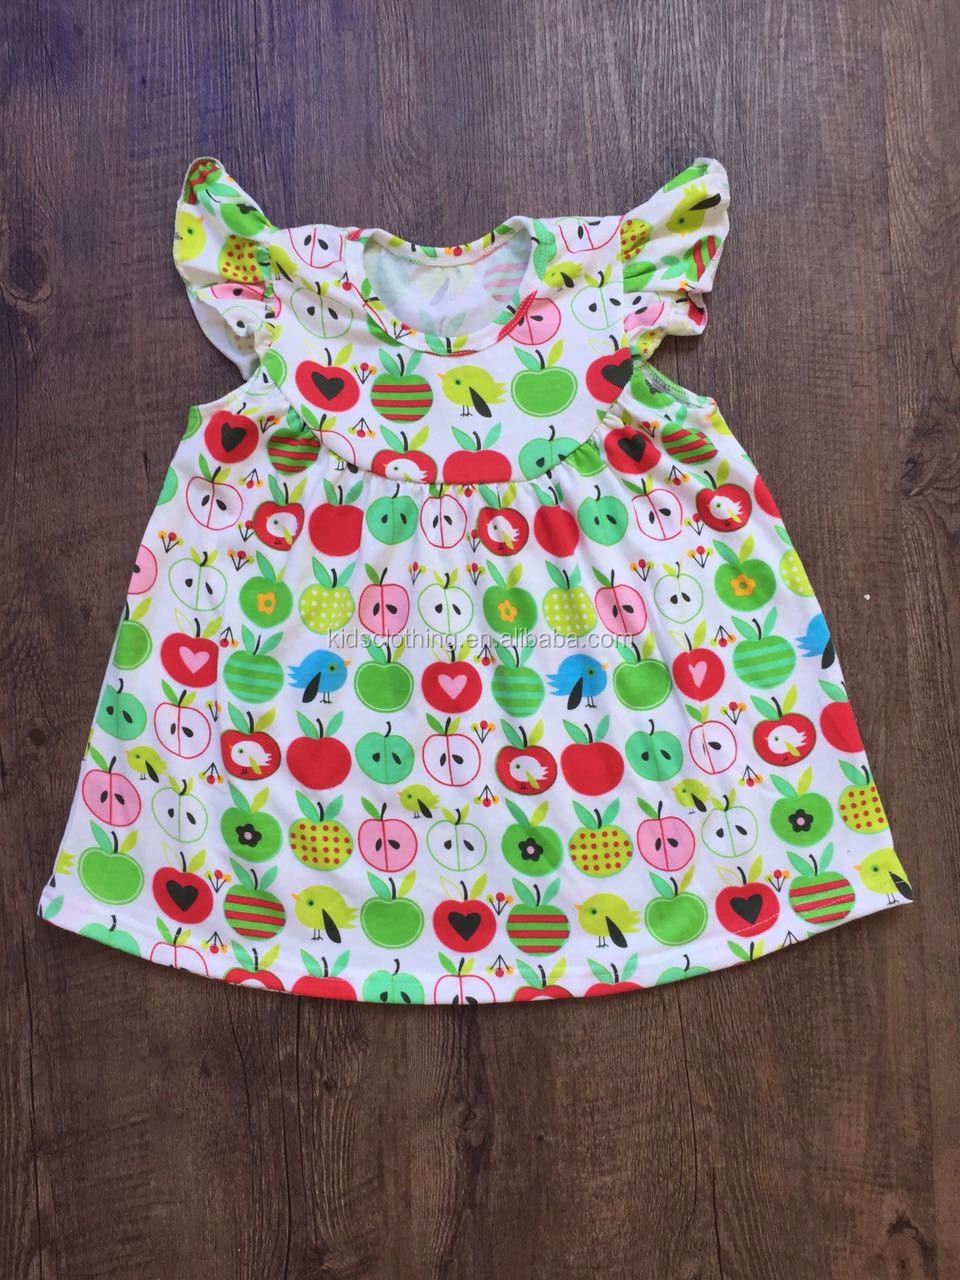 name brand kids clothes girls dress for summer fancy dresses for girls cotton ruffle pearl dress